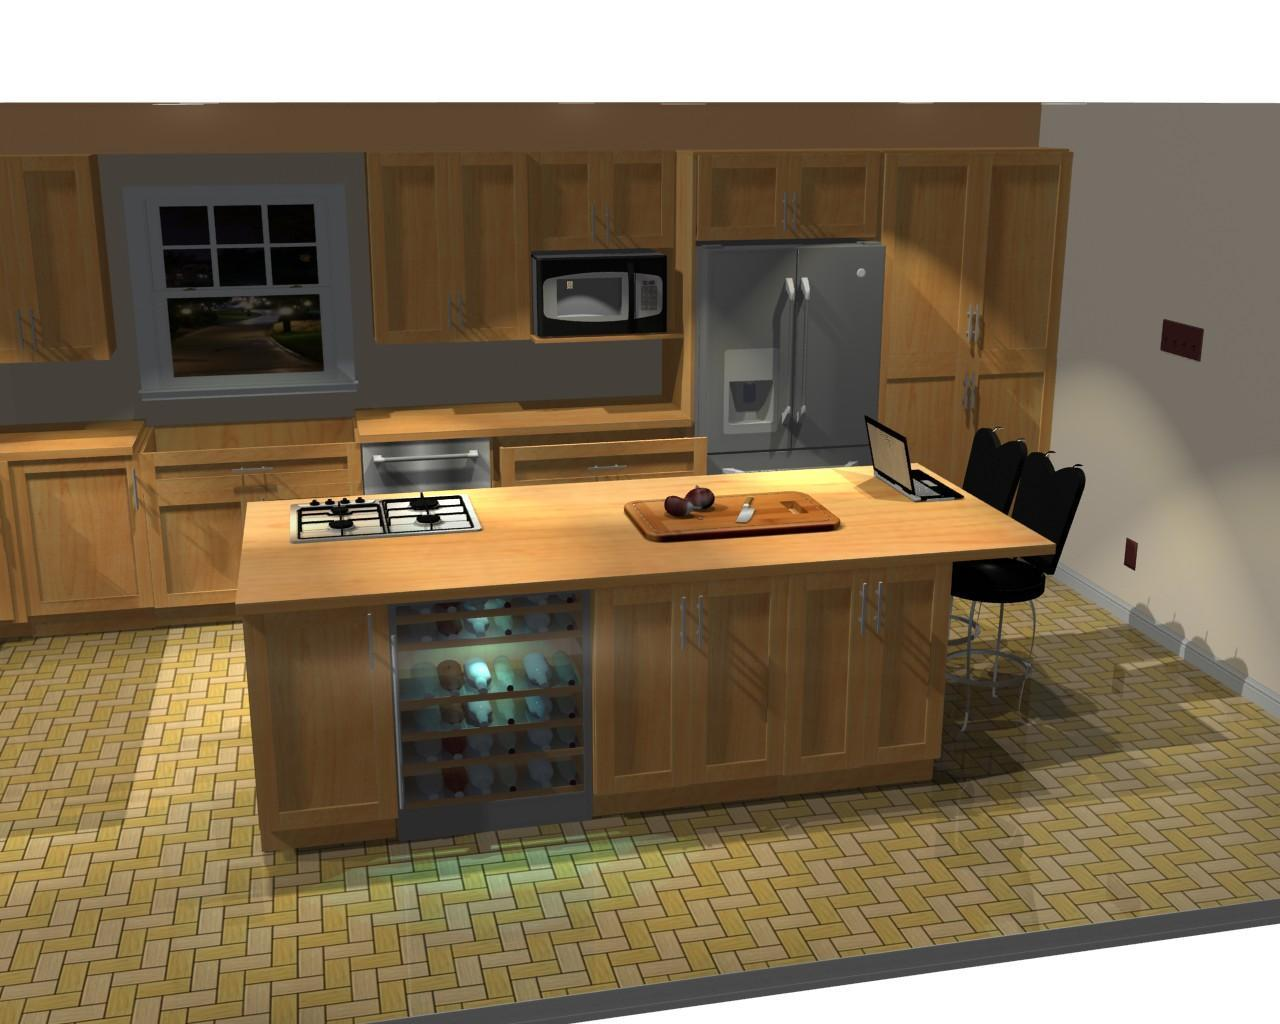 designer kitchen software industries kitchen design software 688